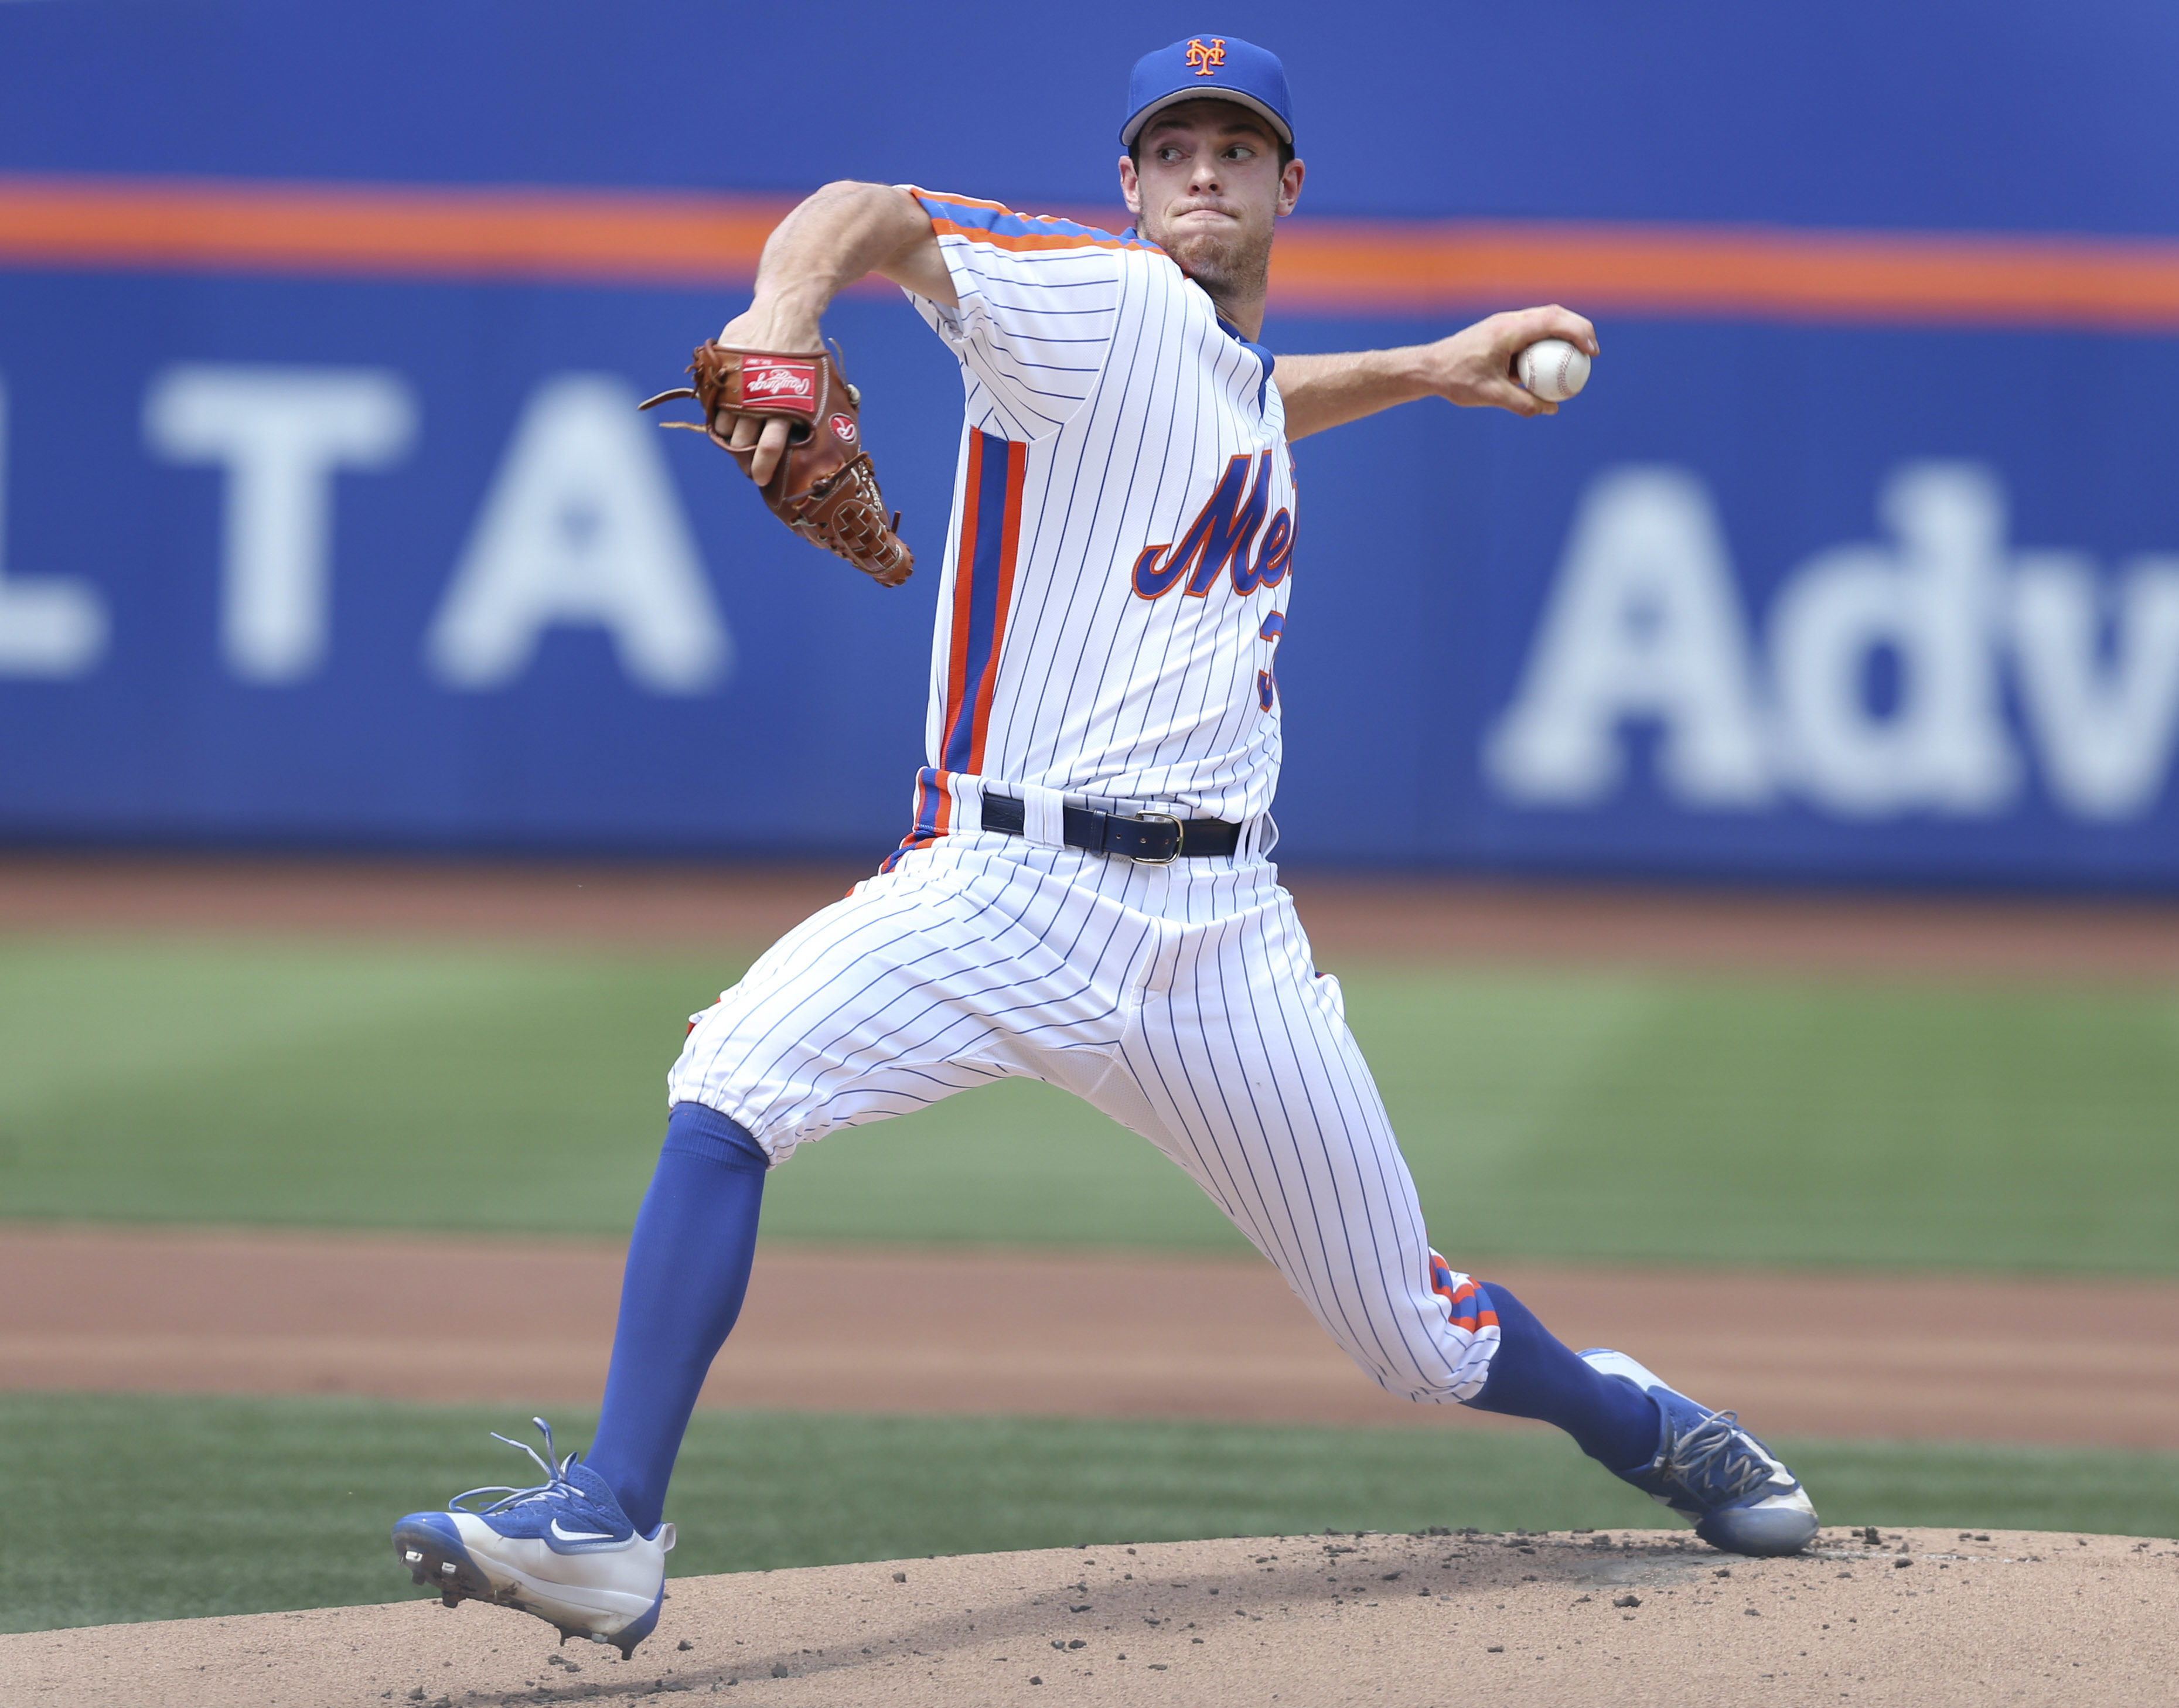 New York Mets starting pitcher Steven Matz throws during the first inning of a baseball game against the San Diego Padres, Sunday, Aug. 14, 2016 in New York. (AP Photo/Seth Wenig)